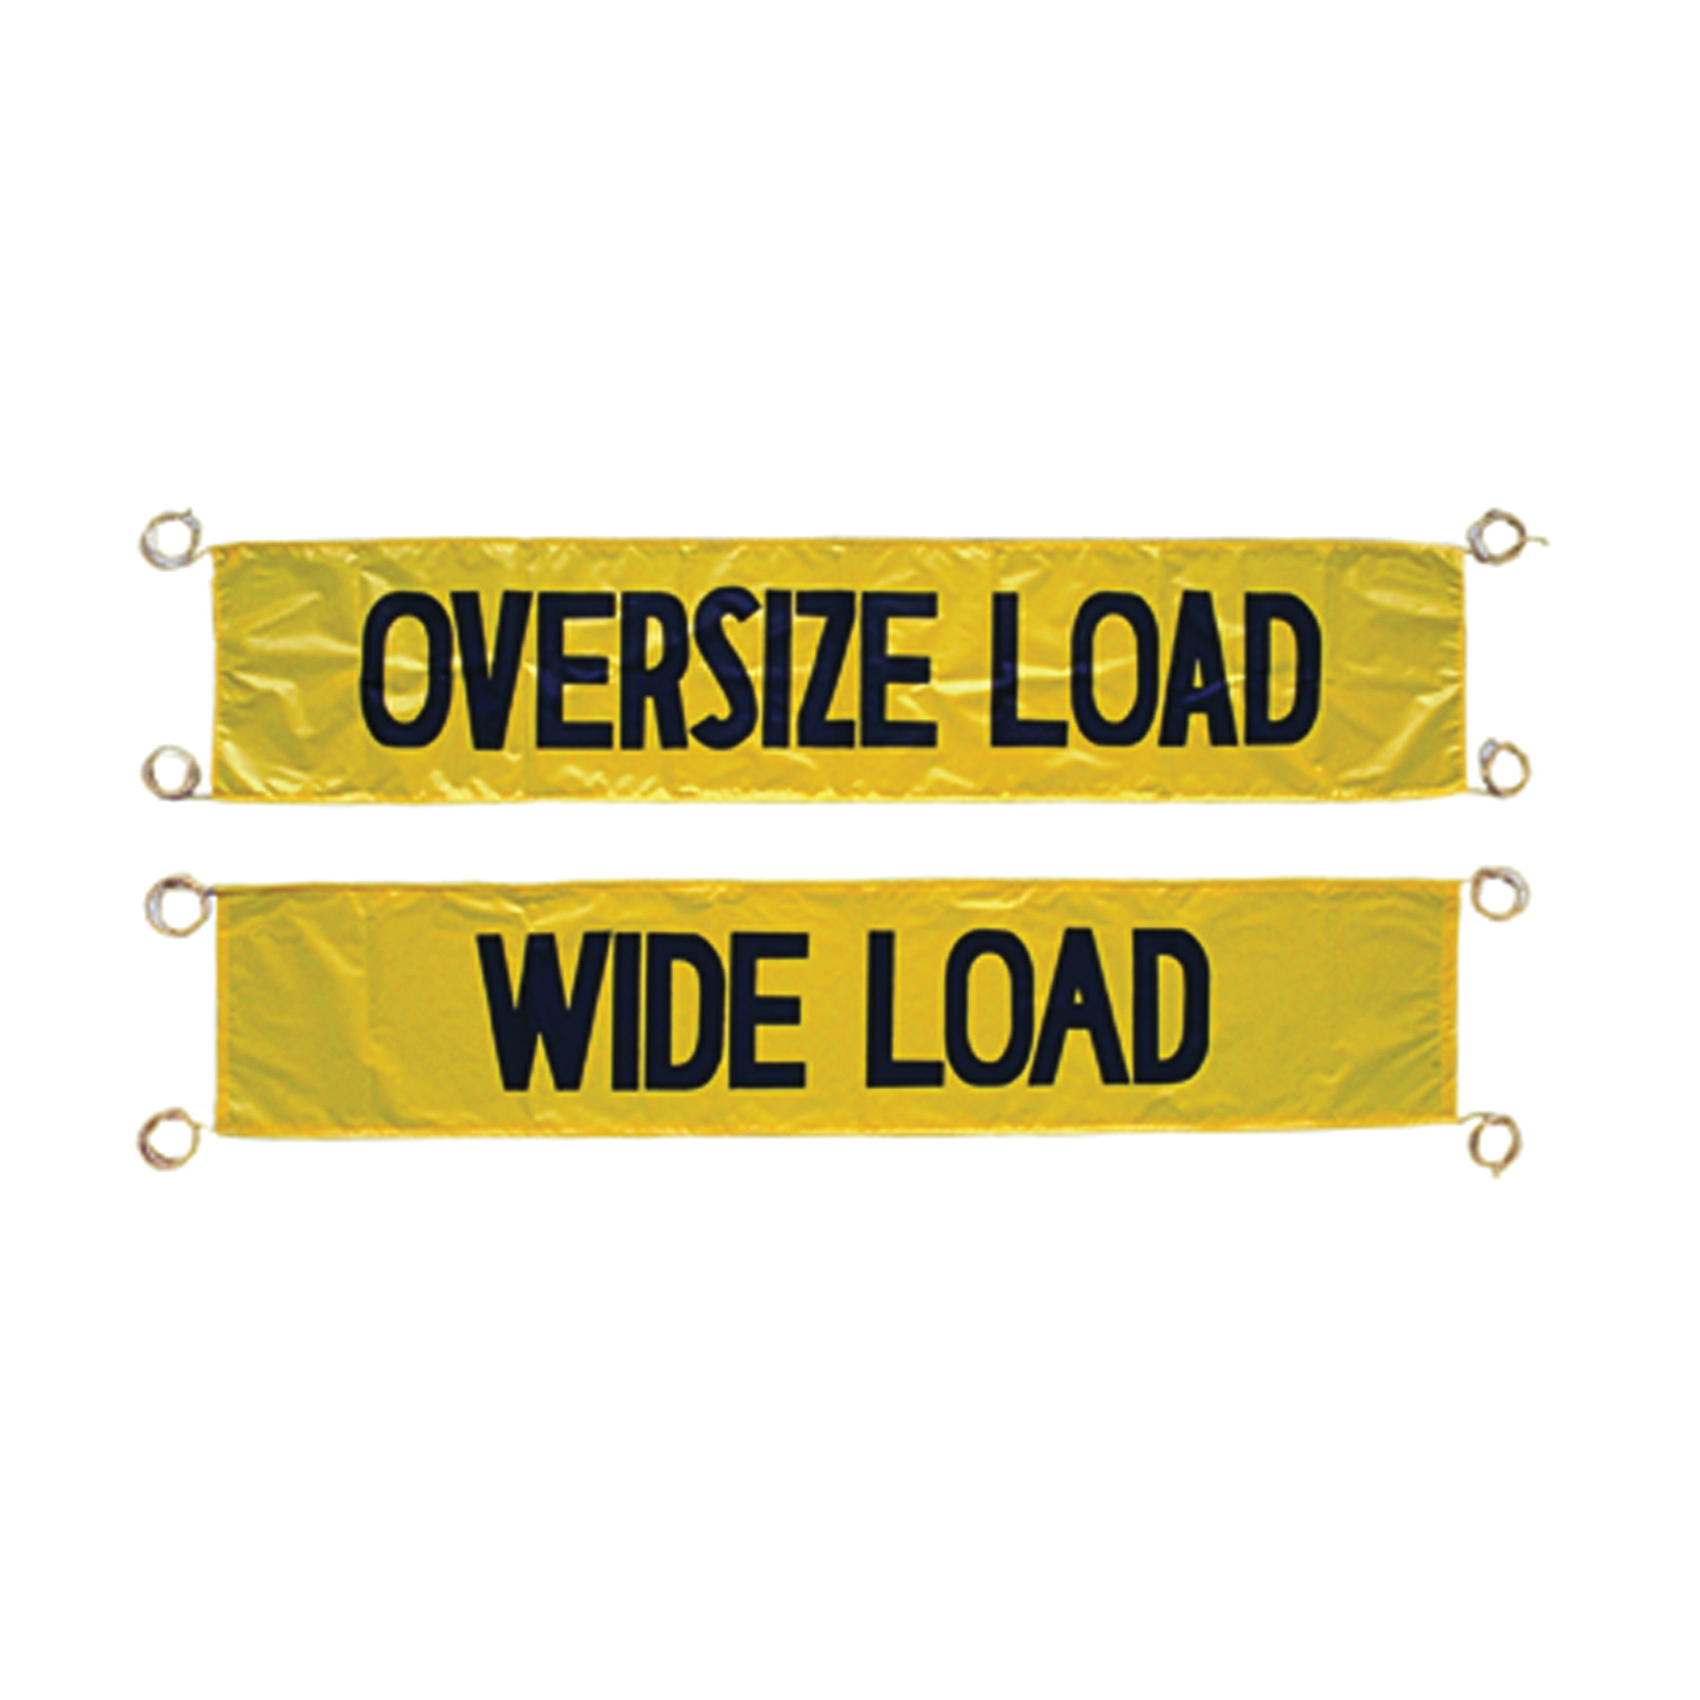 Cortina® 03-11-000 Highway Banner, 18 in H x 96 in W, Black on Yellow, Vinyl